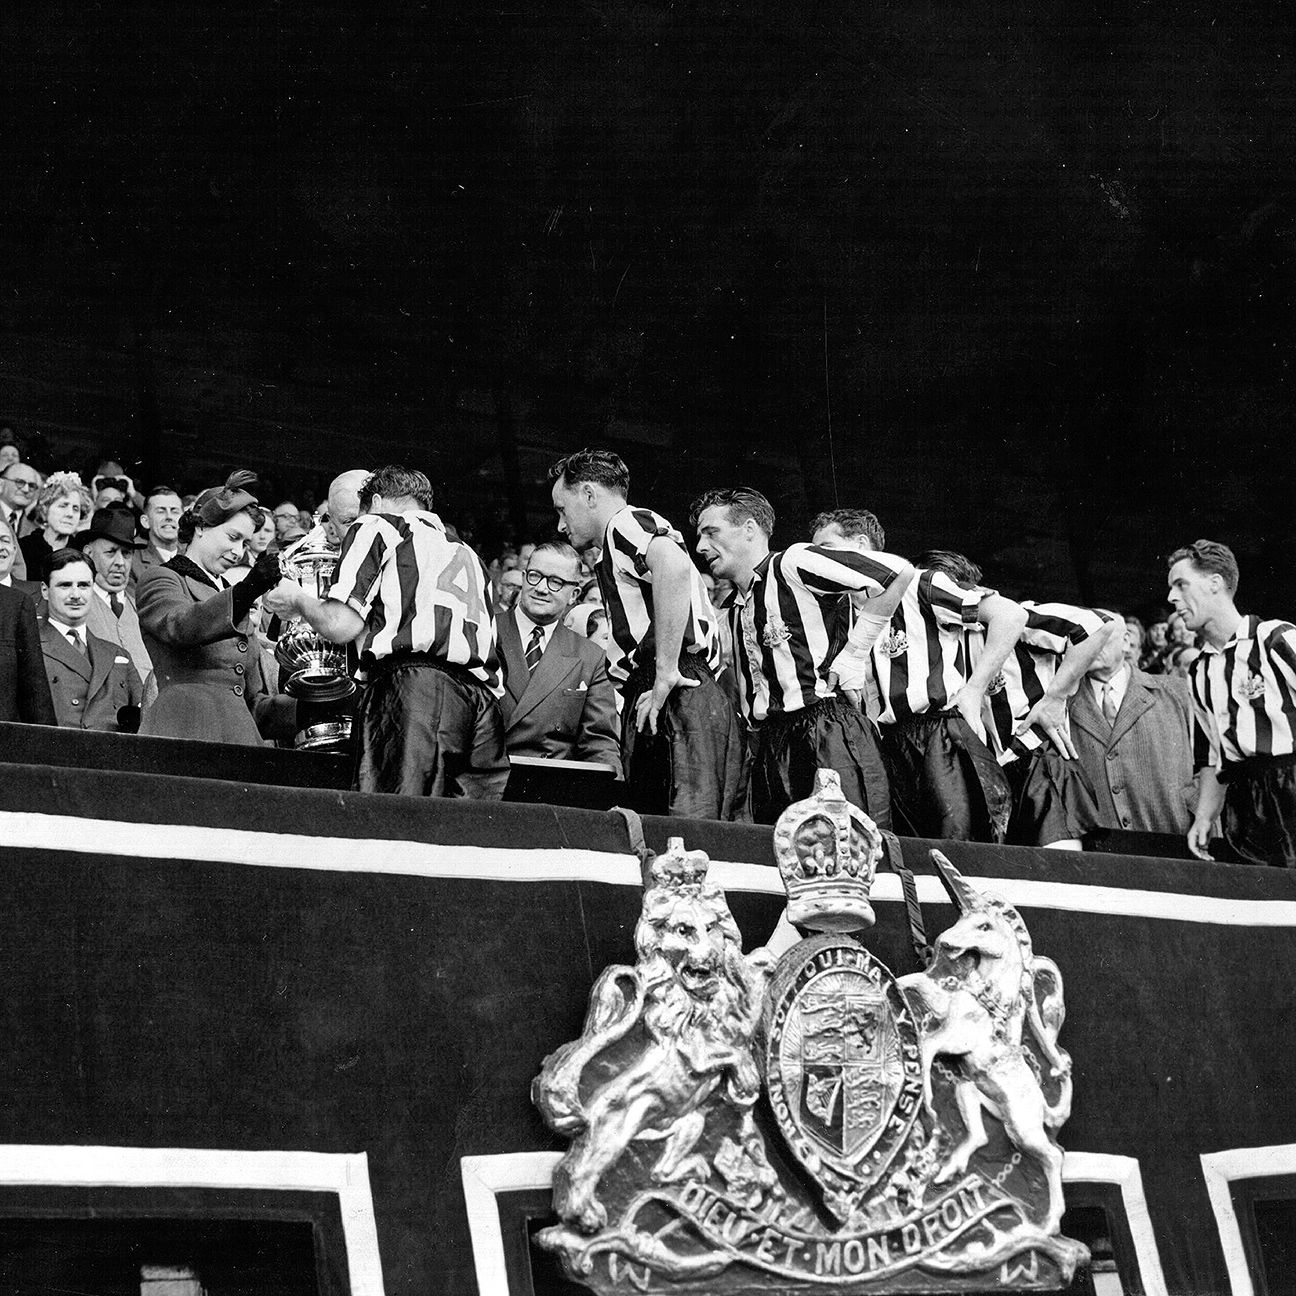 Queen Elizabeth II was just 29 years old when she presented the 1955 FA Cup trophy to Newcastle.